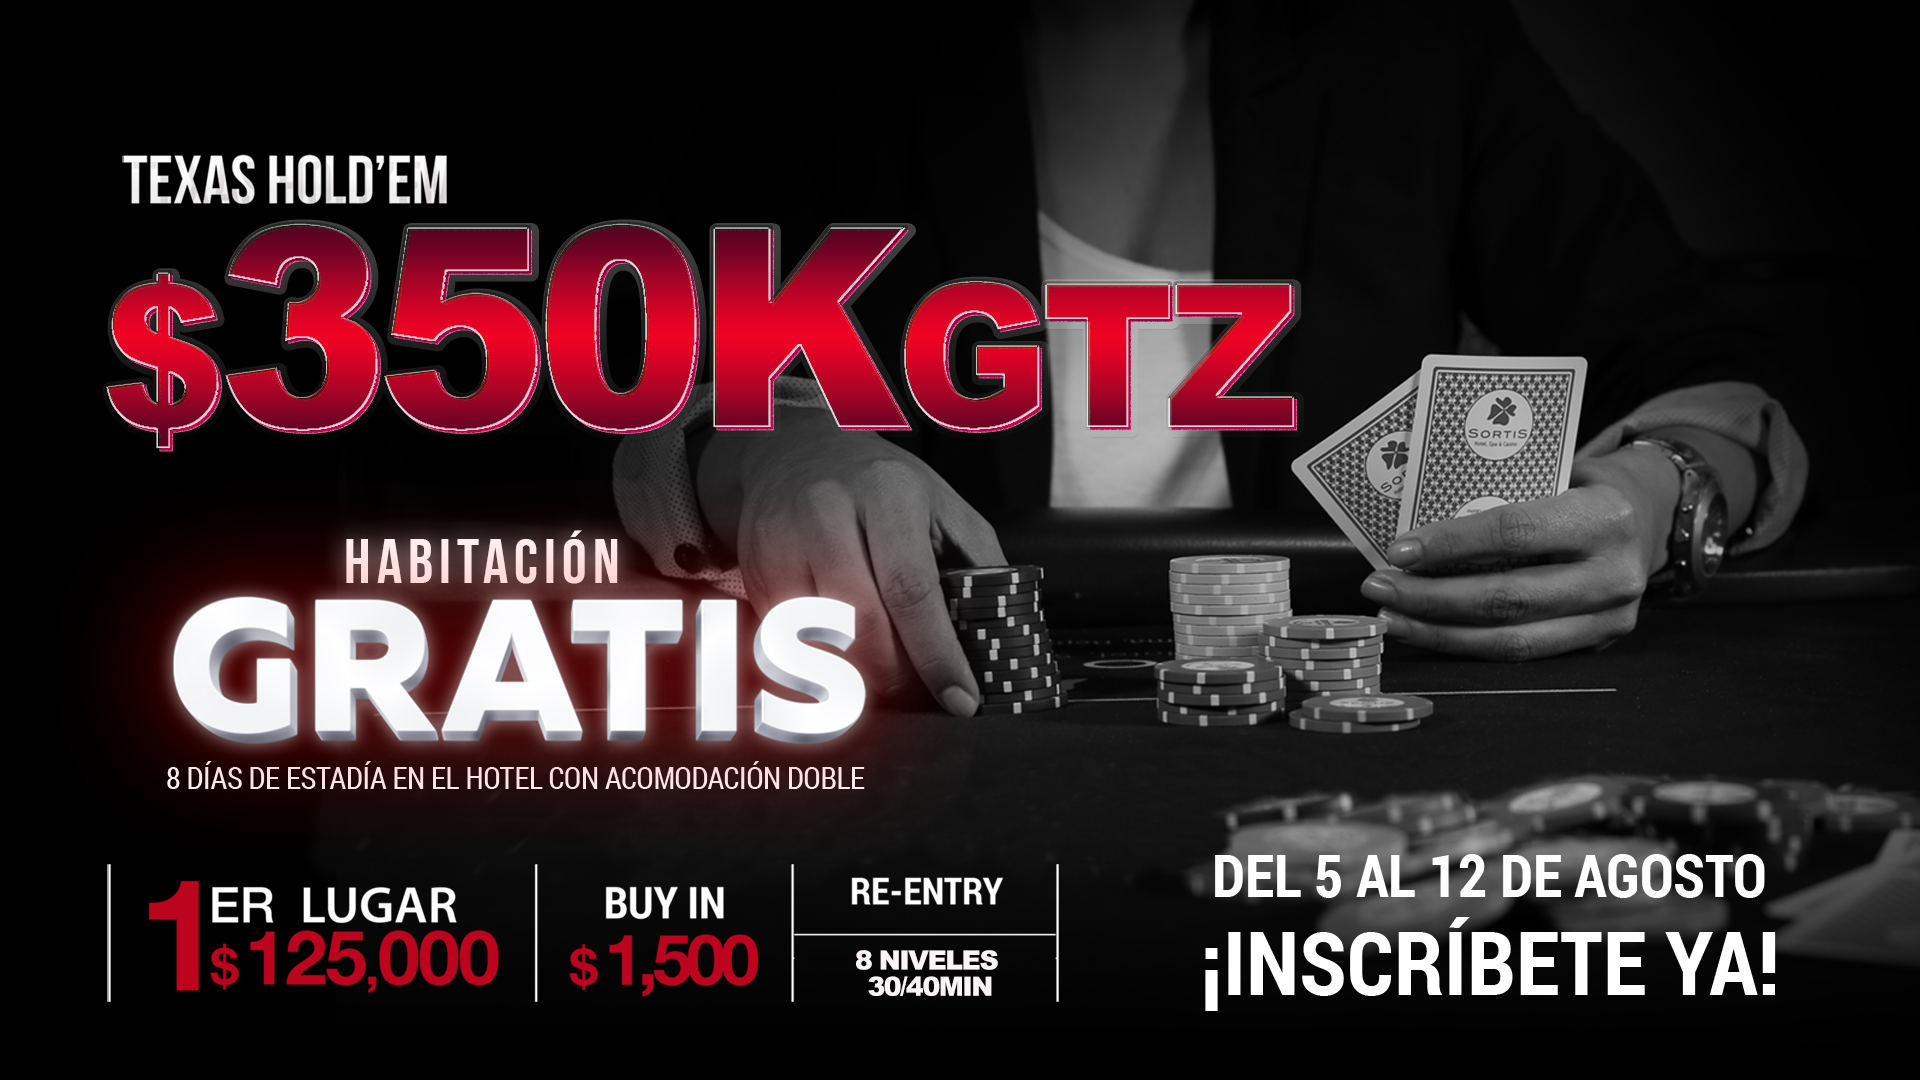 JPT 350K GTZ. SEASON 4 - EVENT 2